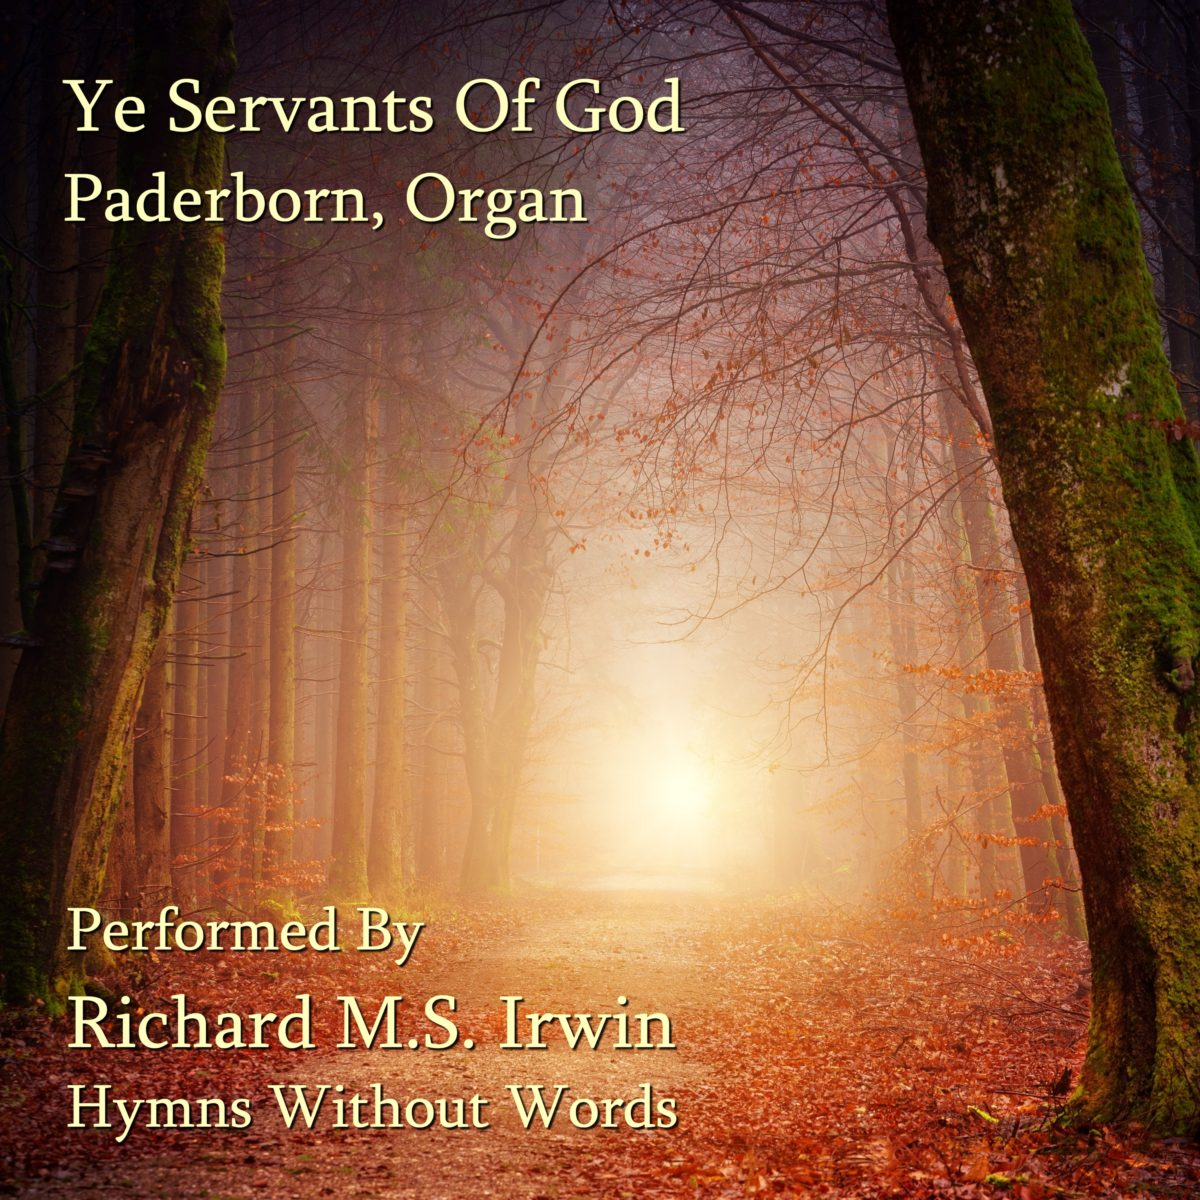 Ye Servants Of God (Paderborn, Organ, 4 Verses)